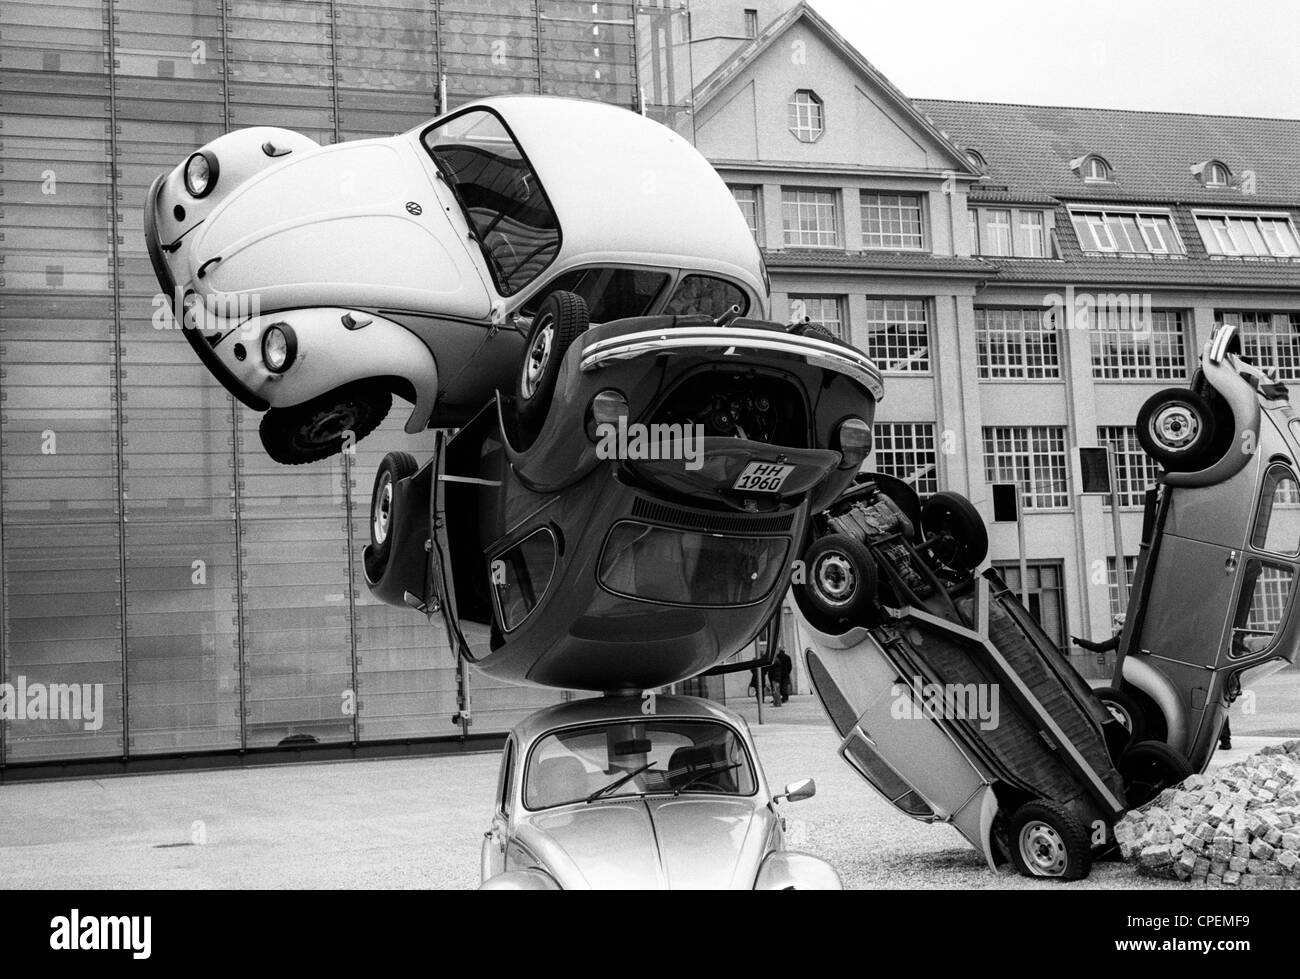 Car Culture exhibition ZKM museum Karlsruhe Baden-Wuerttemberg Germany - Stock Image